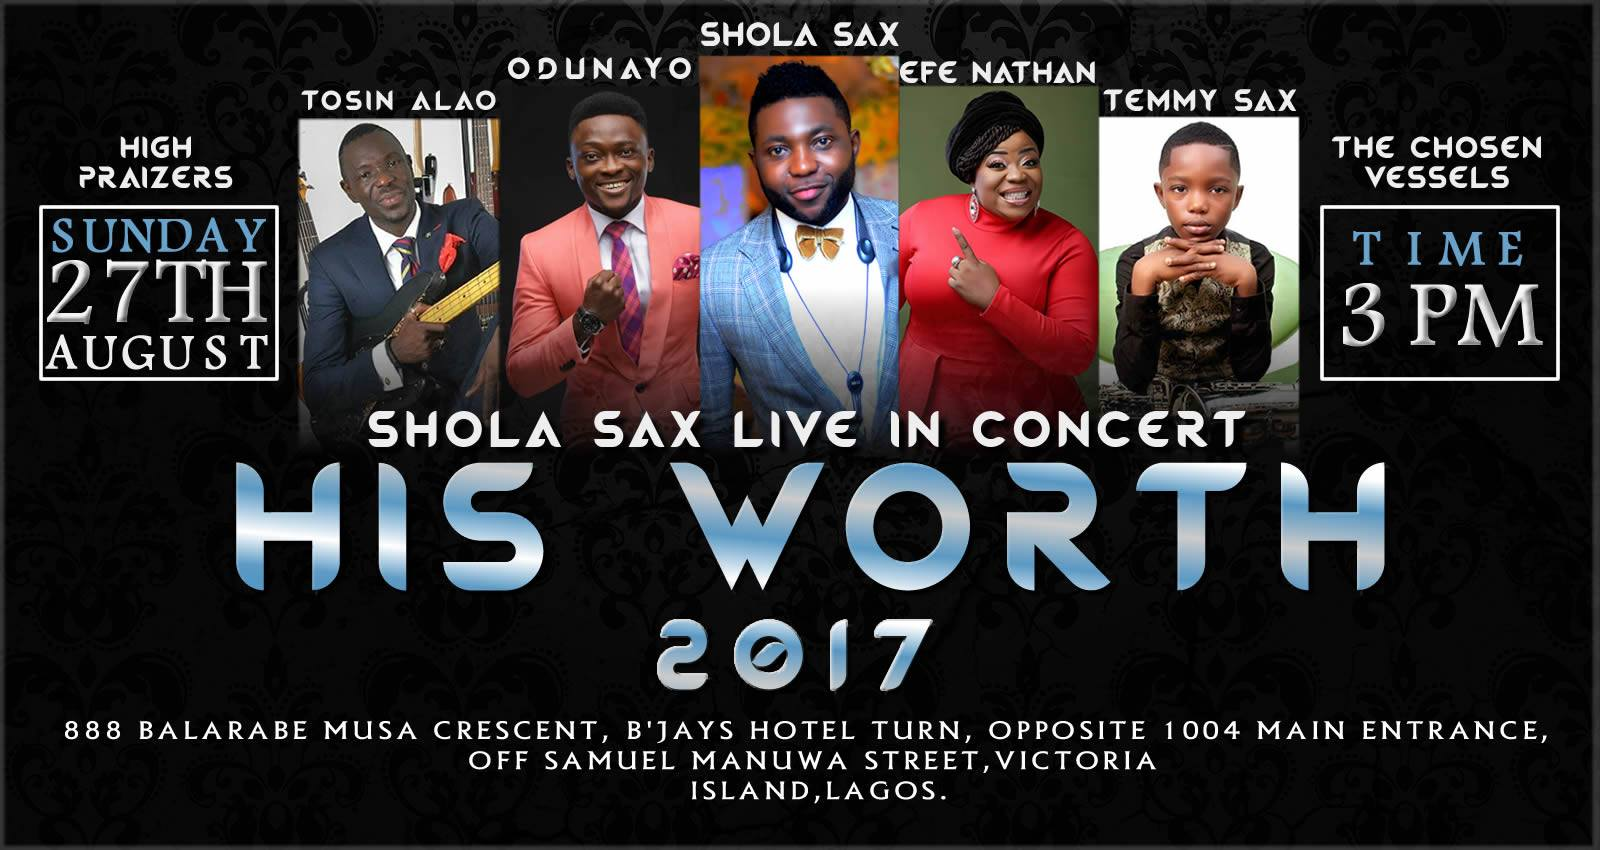 HIS WORTH 2017 | Shola Sax Live in Concert